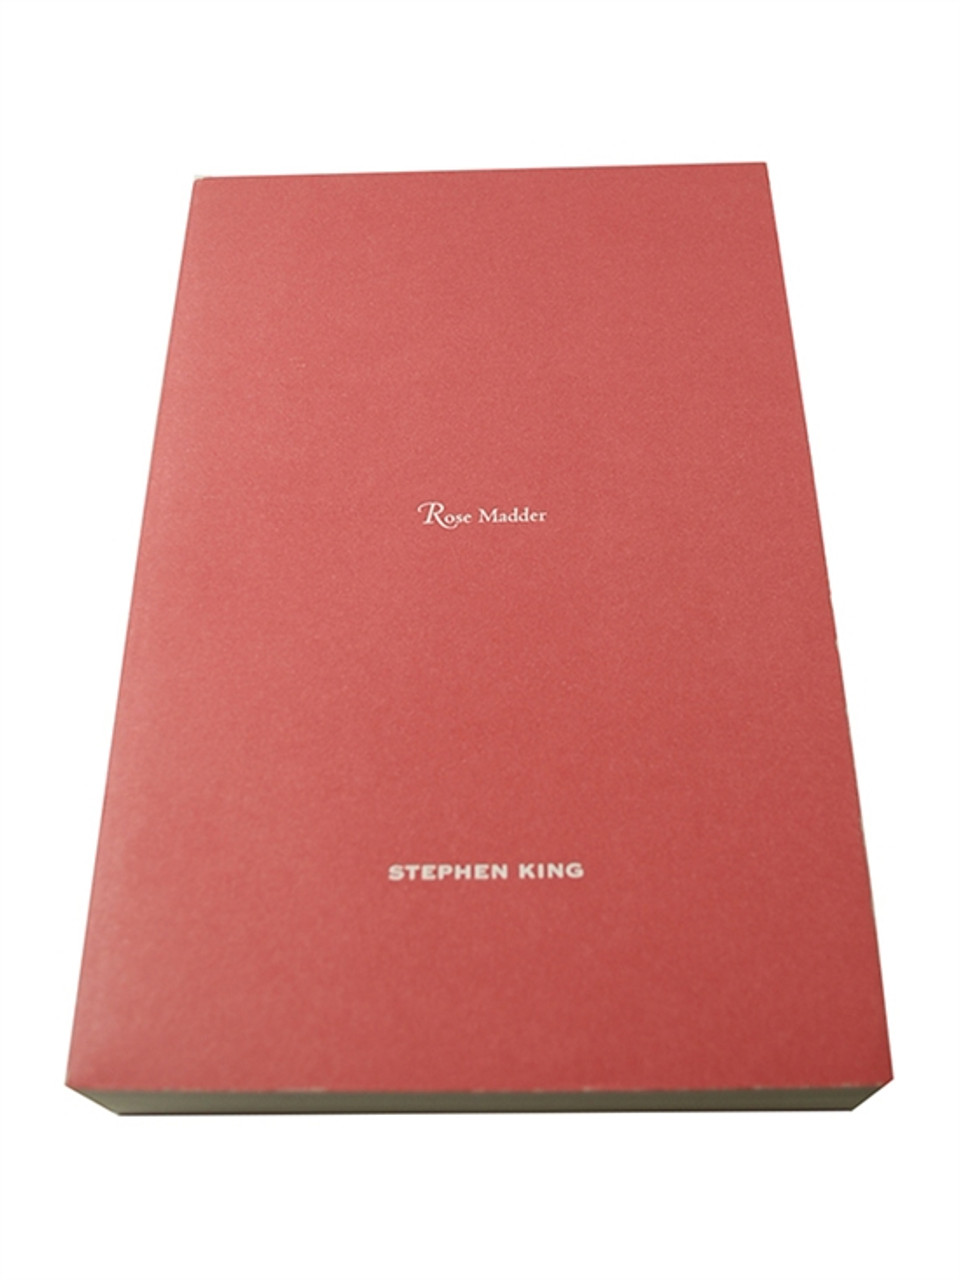 """Stephen King """"Rose Madder"""" Signed First Edition, Unrevised and Unpublished Proof"""